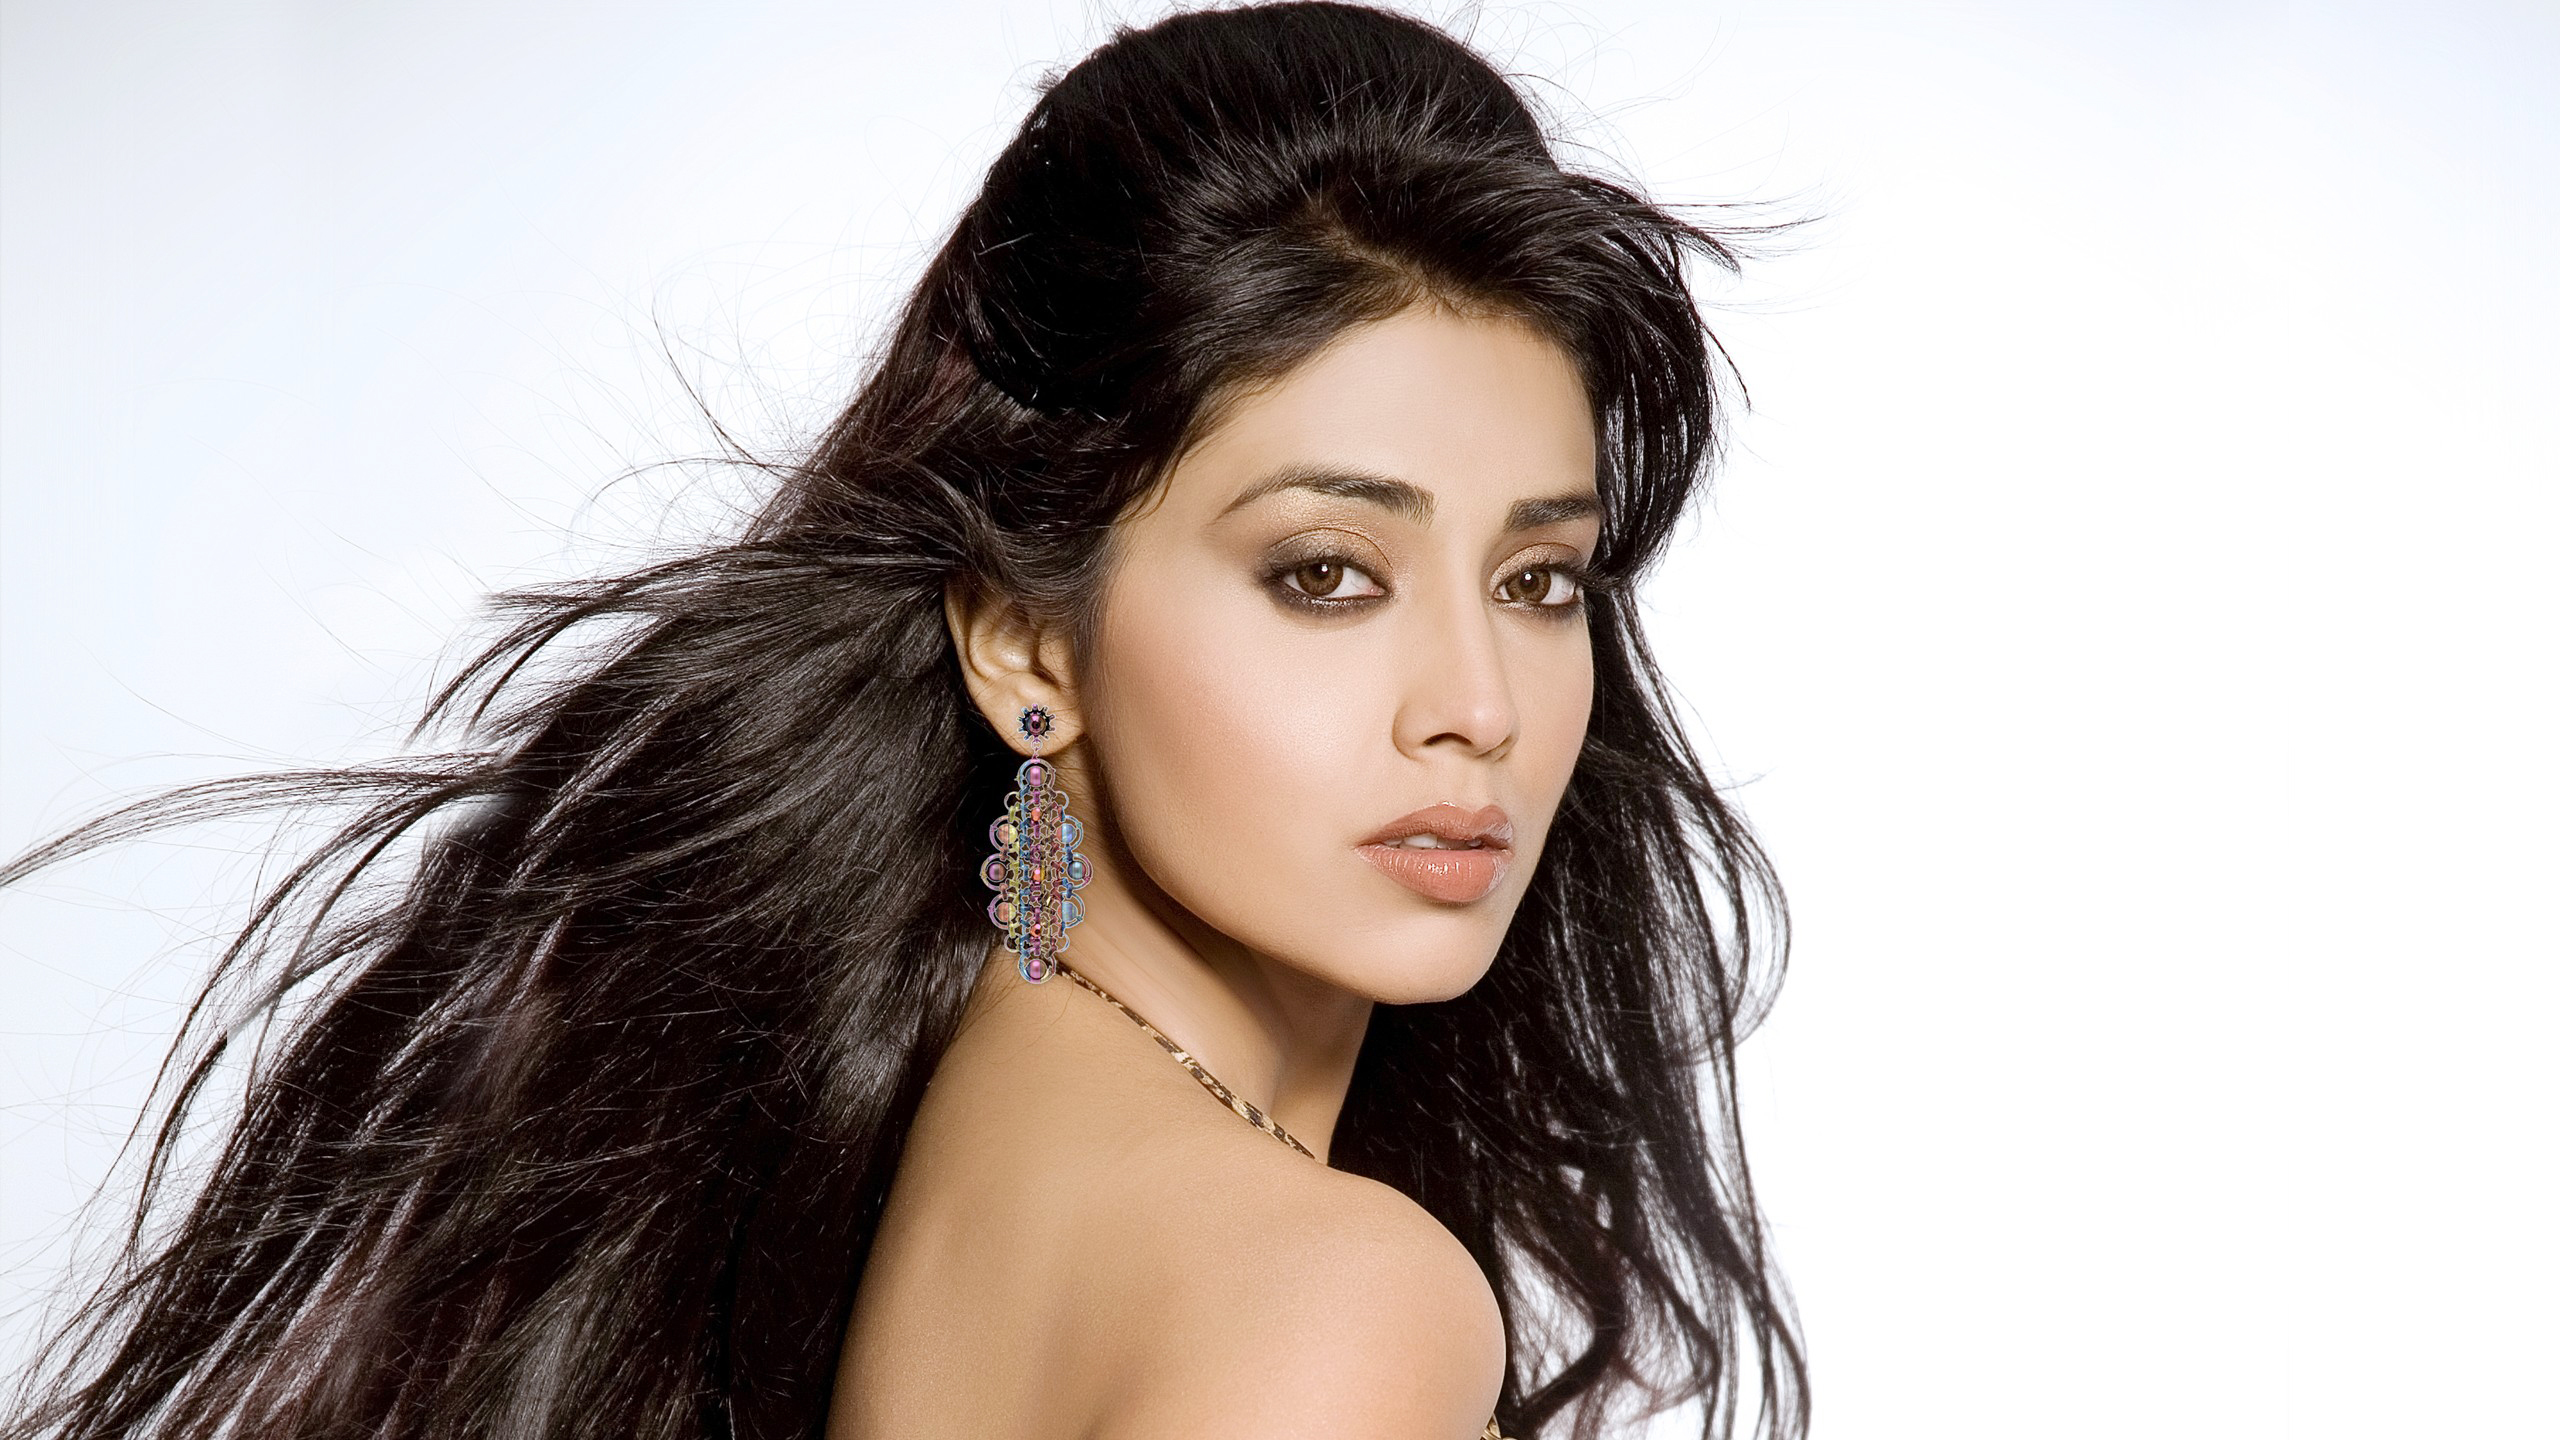 shriya saran full hd wallpaper and background image | 2560x1440 | id